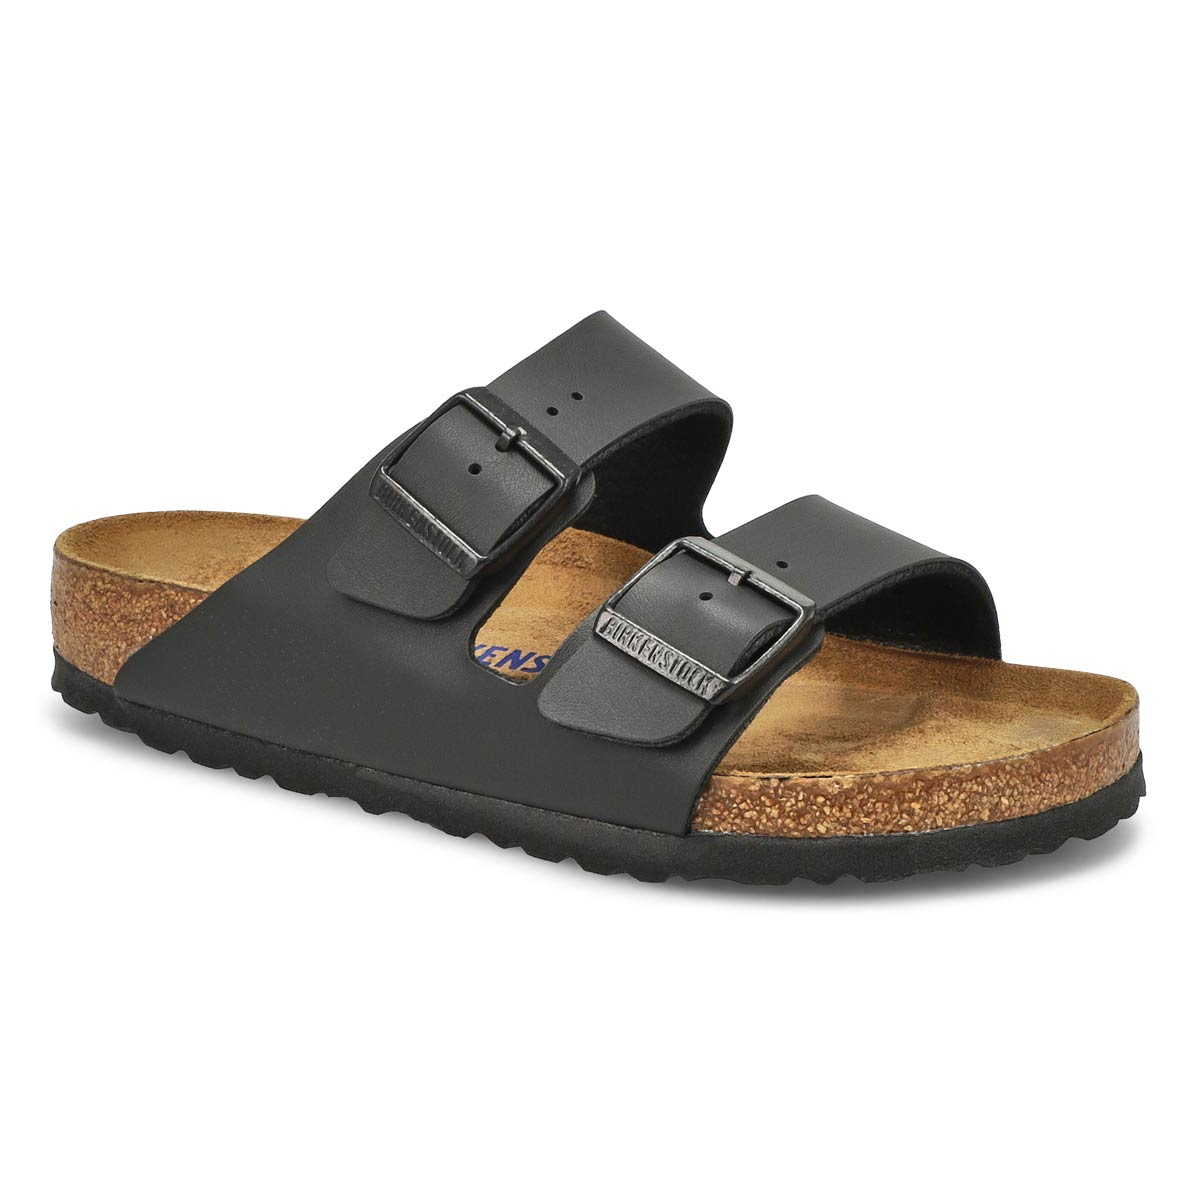 Women's ARIZONA SF black 2 strap sandal